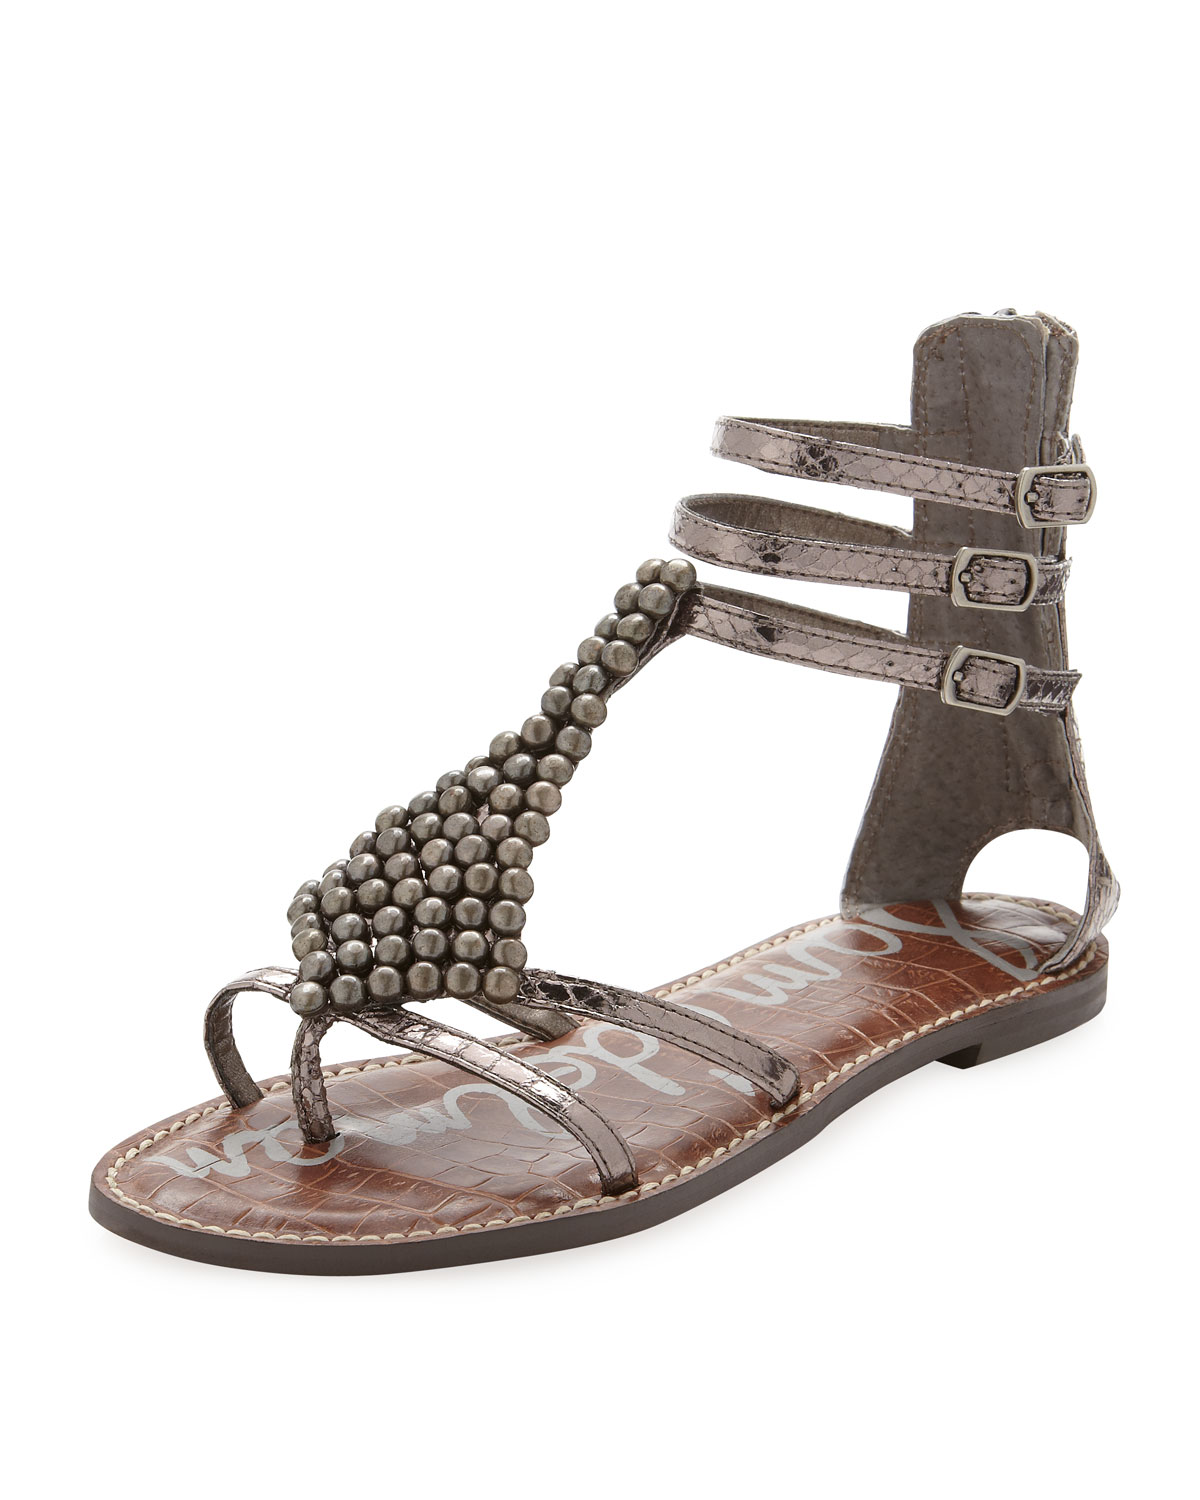 Sam Edelman Gladiator Sandal In Gray Lyst